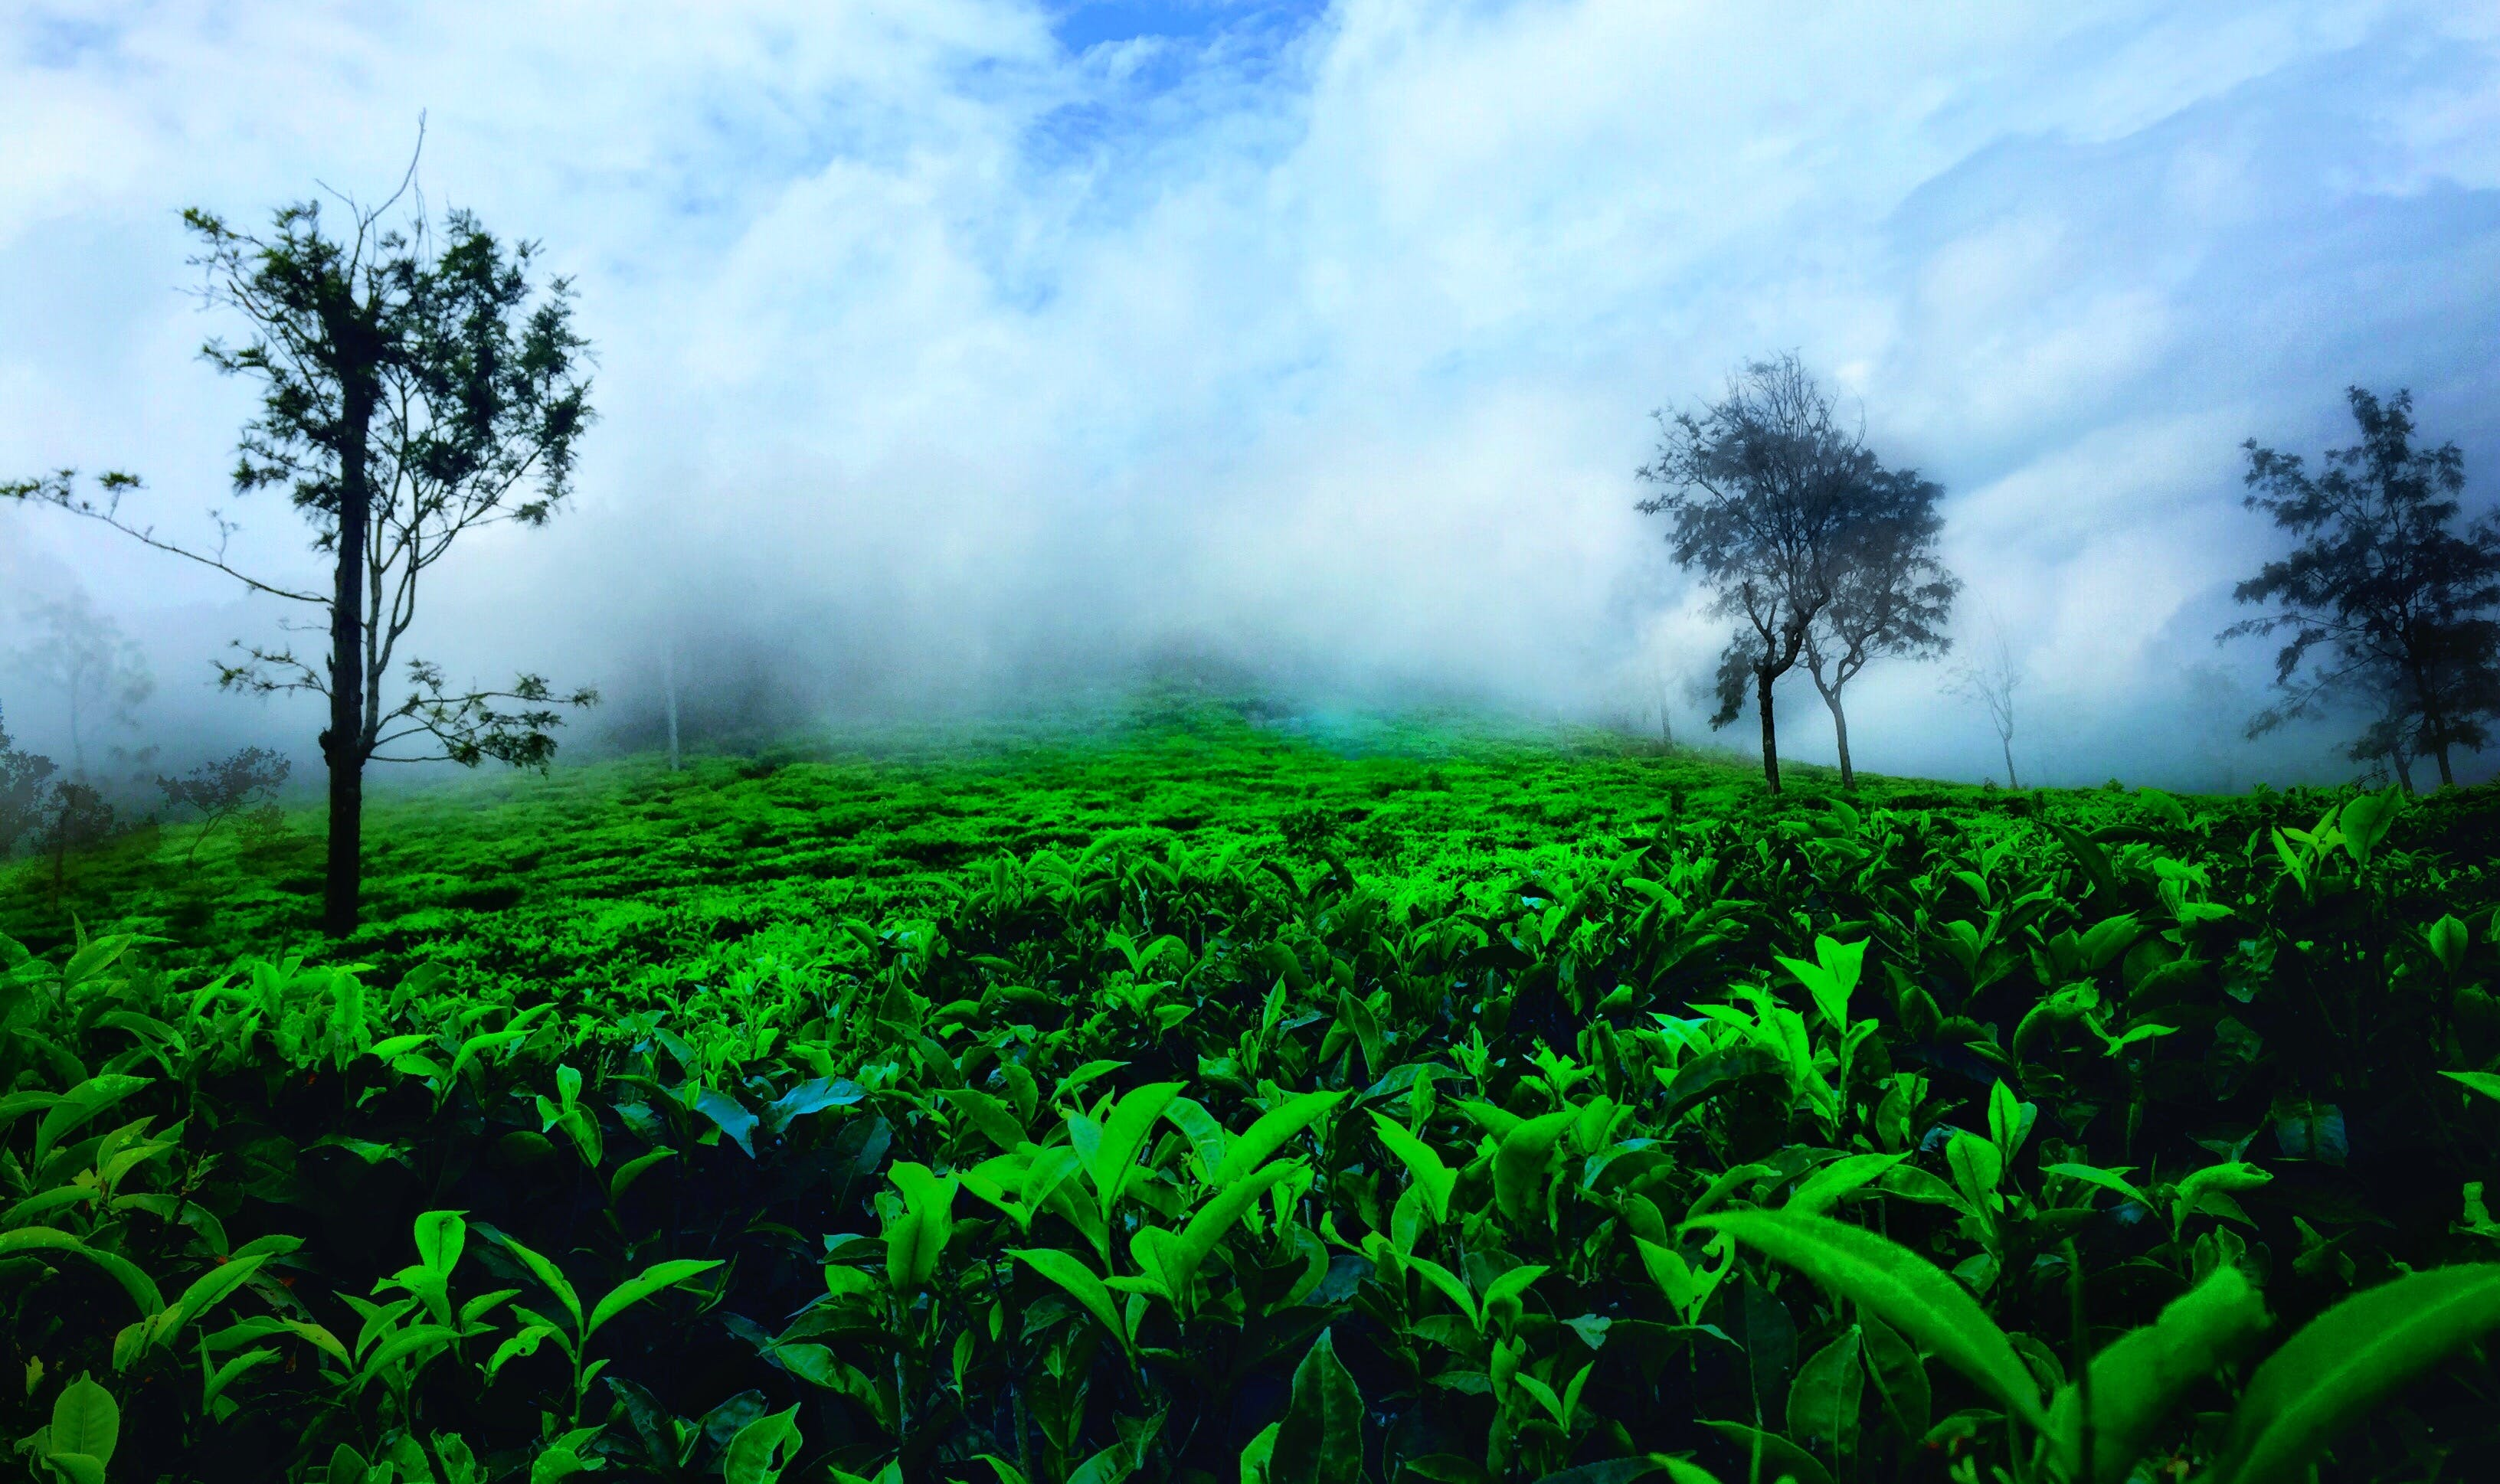 Free stock photo of #India #ooty #nature #green #clouds #mist #peace